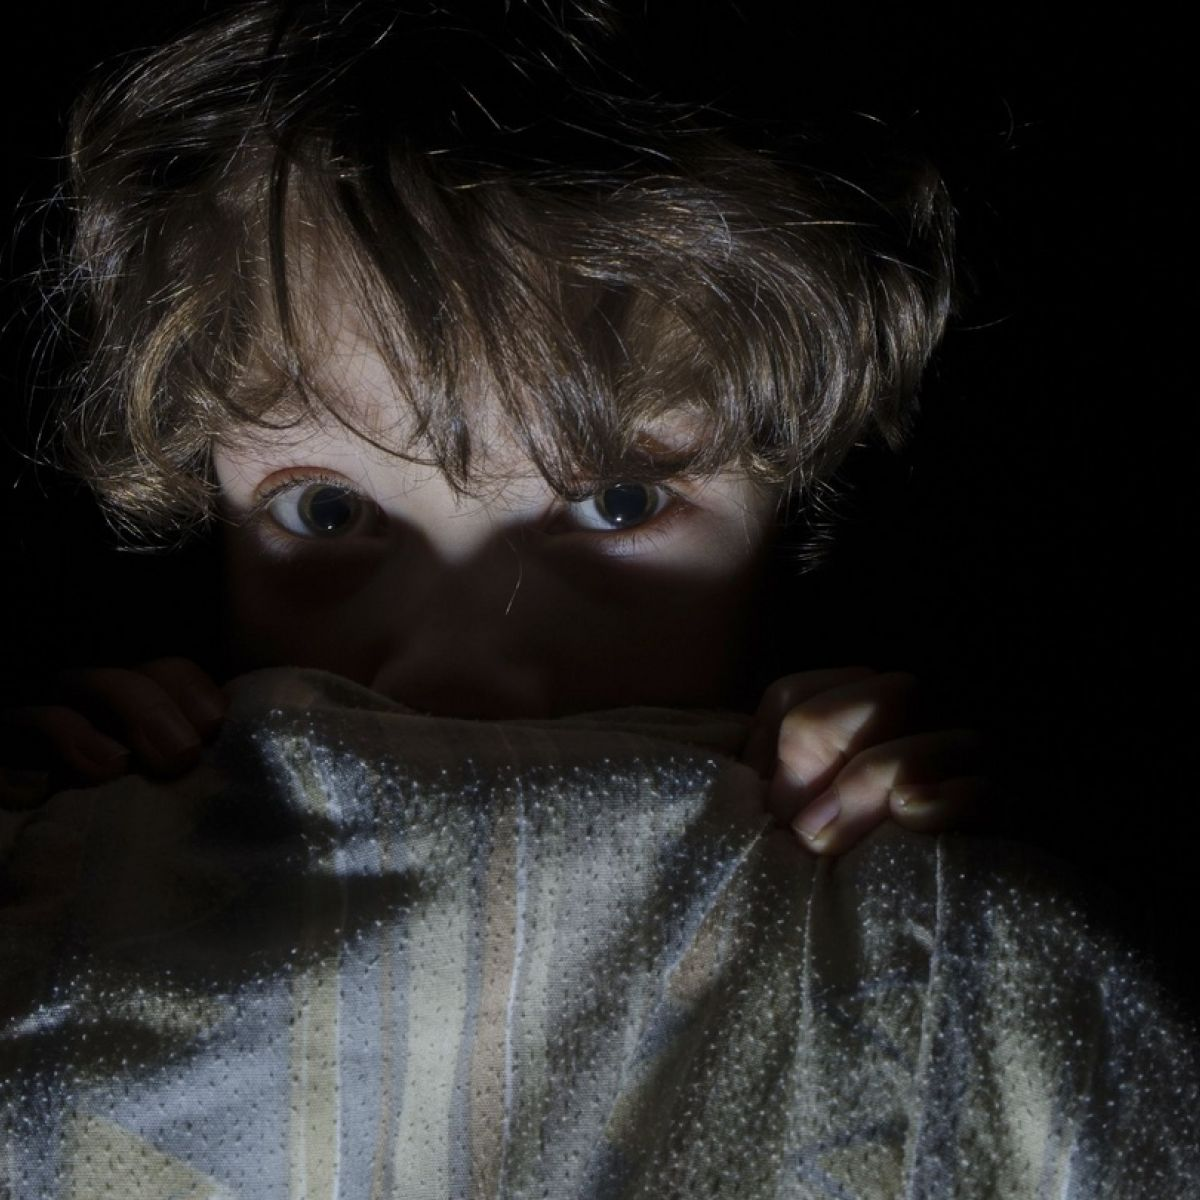 My son can't sleep after seeing a scary picture